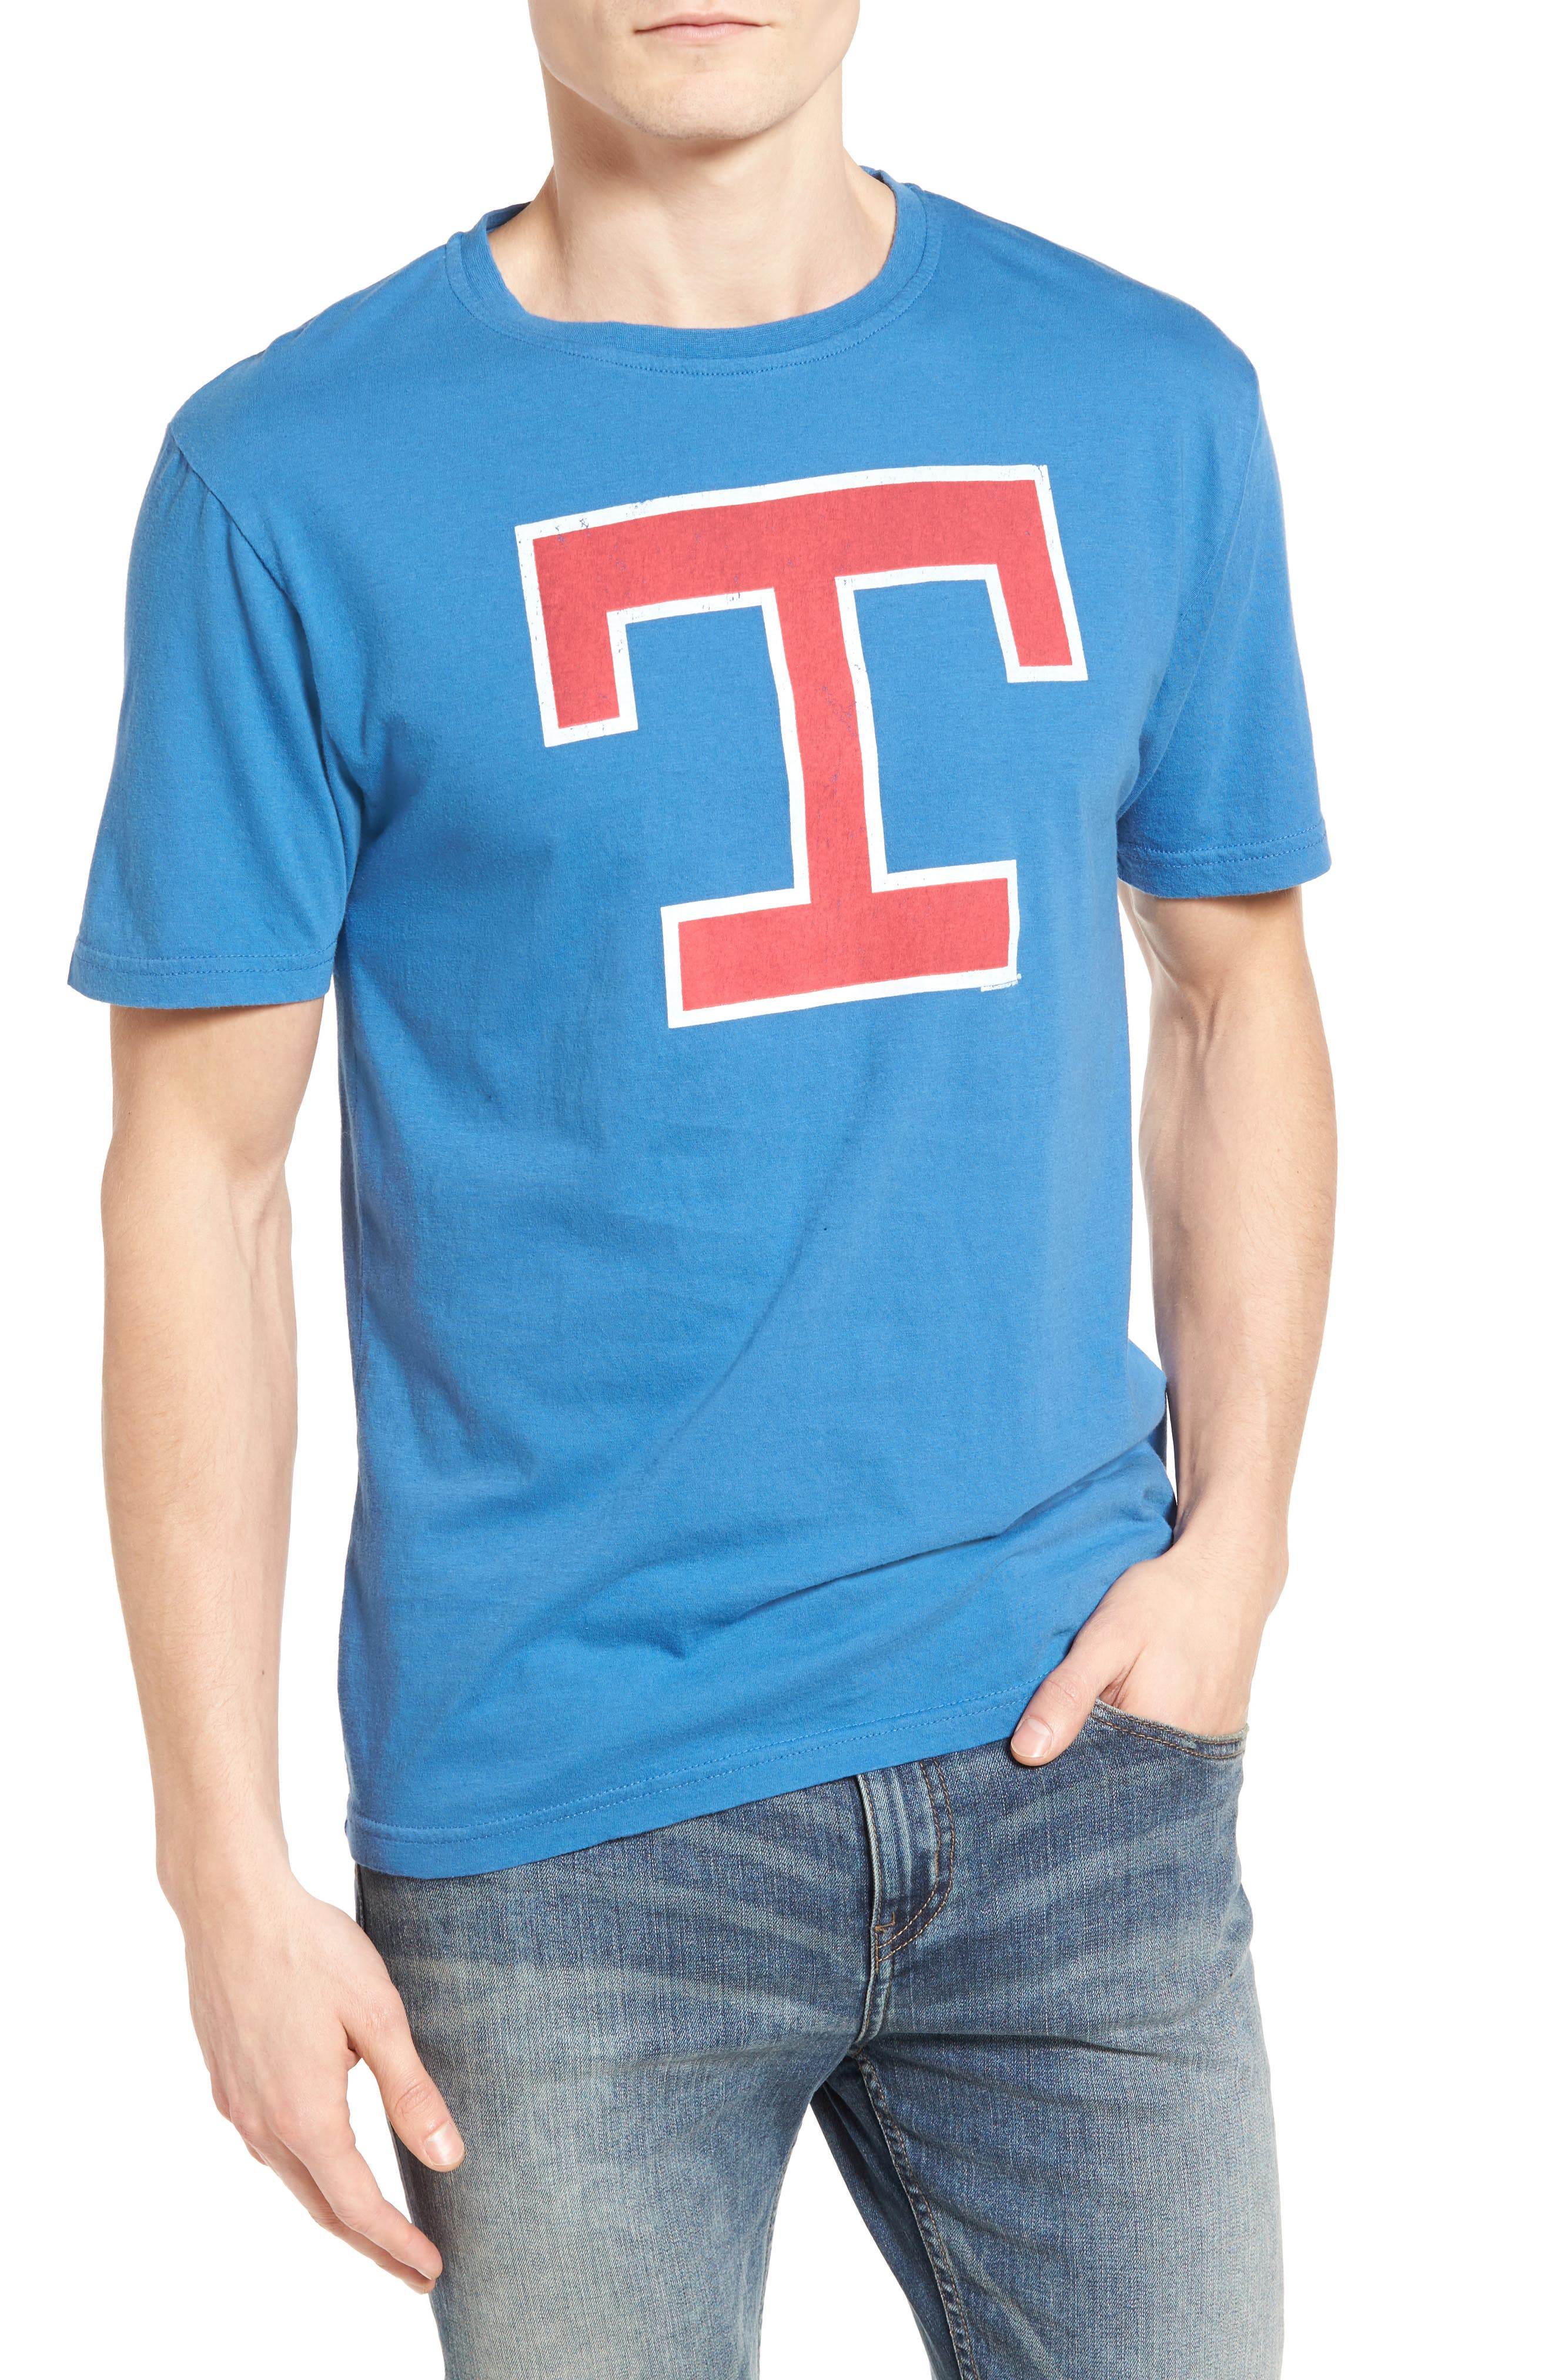 Main Image - American Needle Brass Tack Texas Rangers T-Shirt